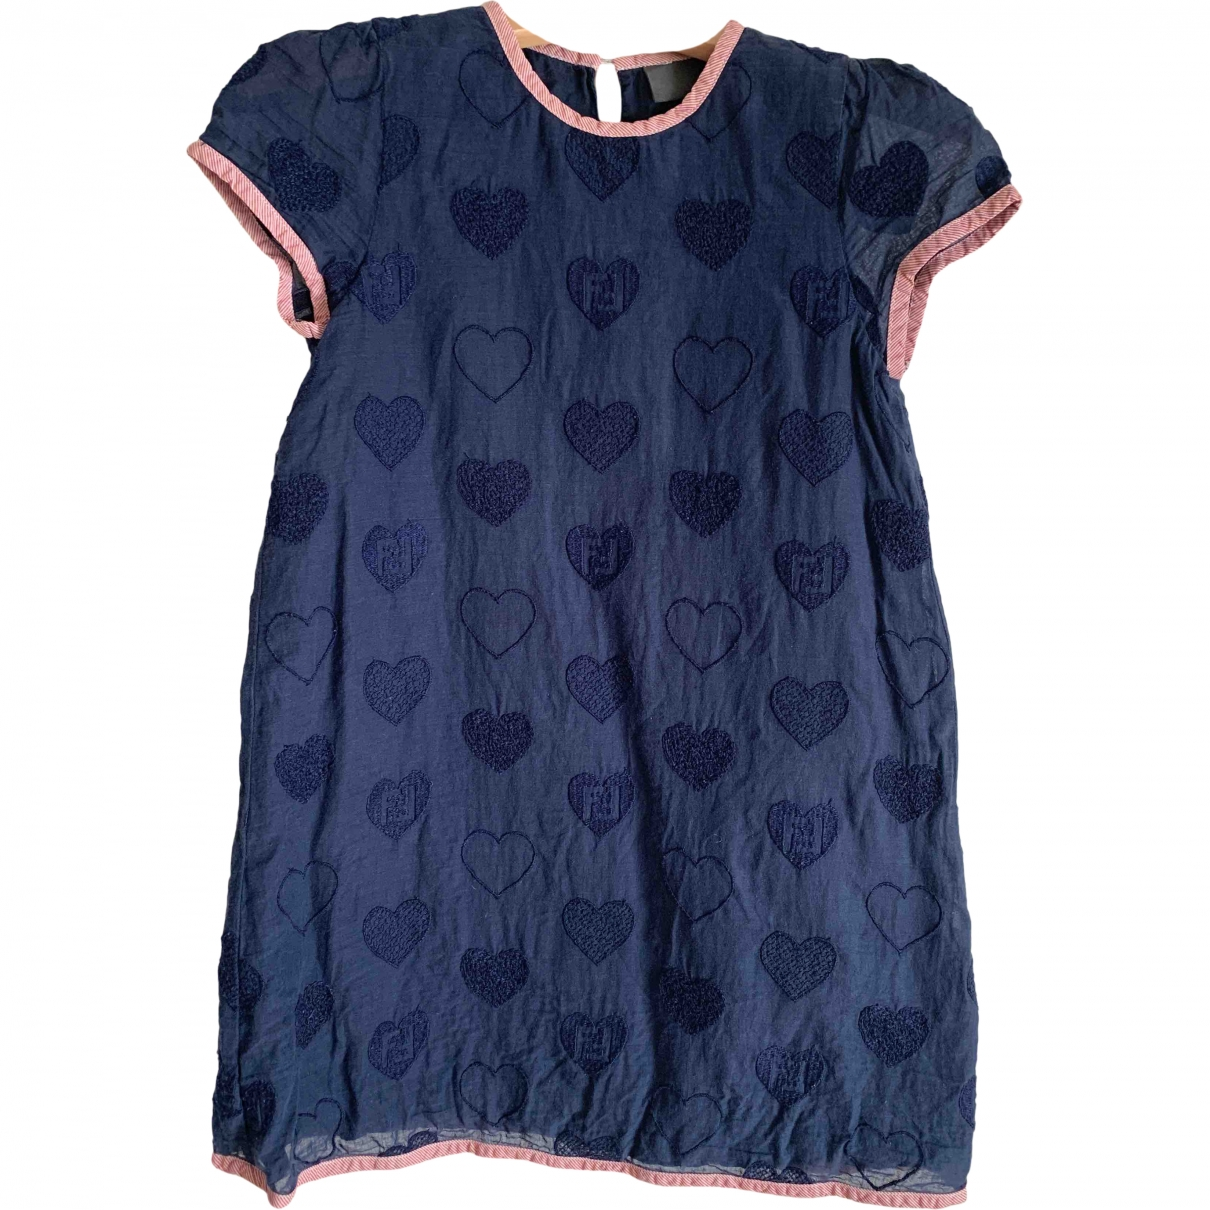 Fendi \N Blue Cotton dress for Kids 4 years - until 40 inches UK